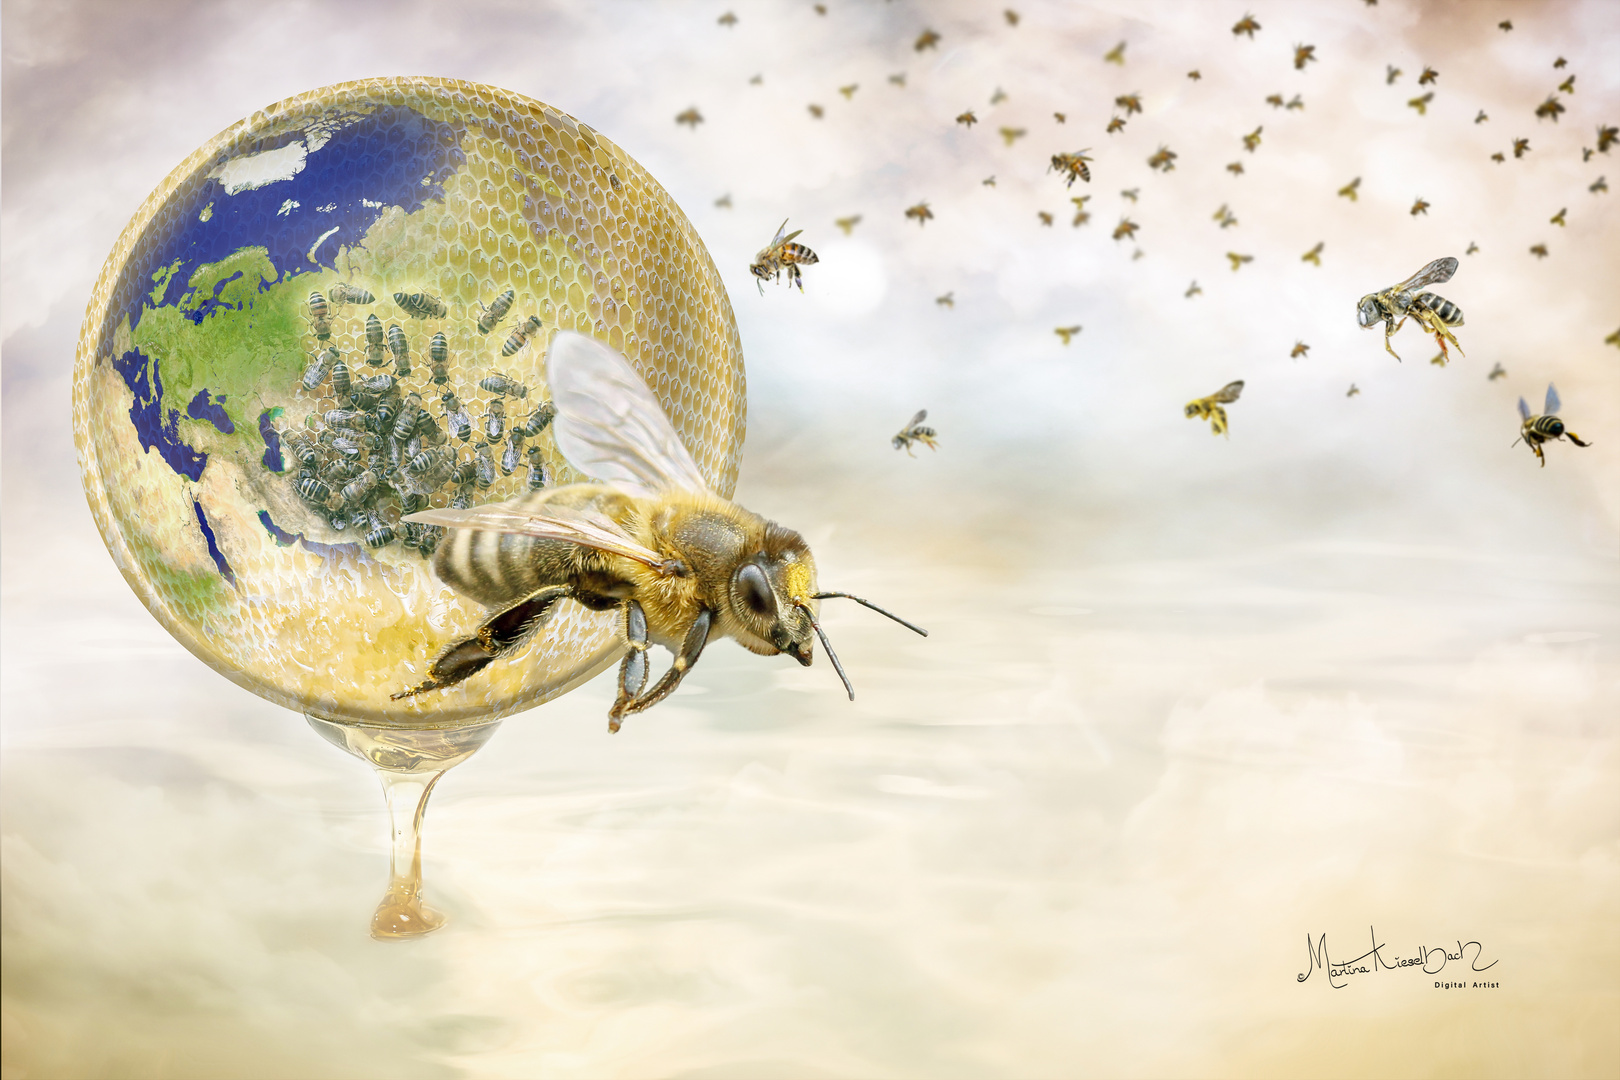 Without the bees, the world is nothing ...